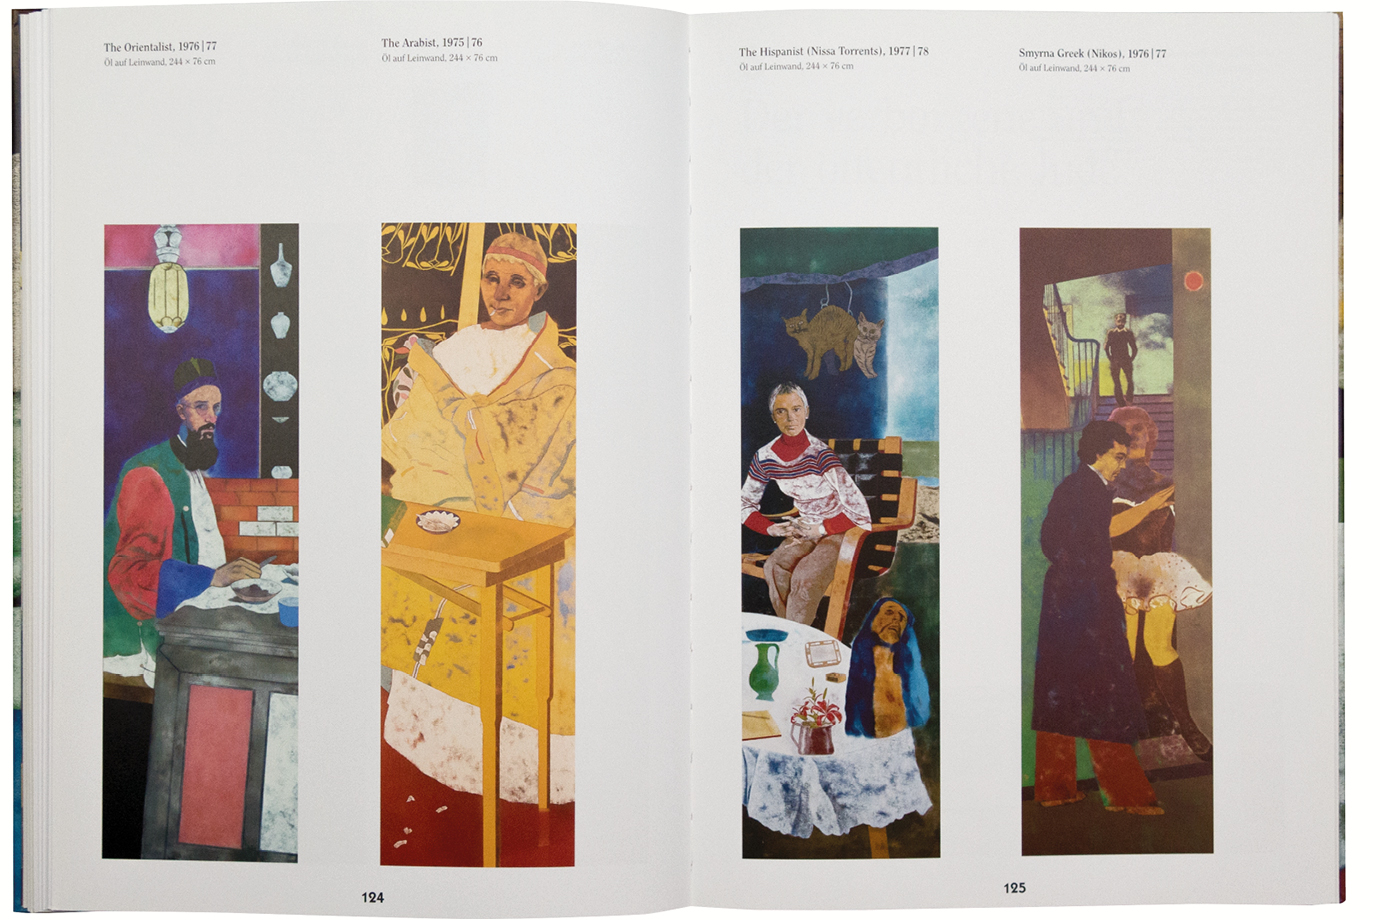 http://e-o-t.de/wordpress/wp-content/uploads/2017/07/eot-2012-Kitaj-Book-15.jpg